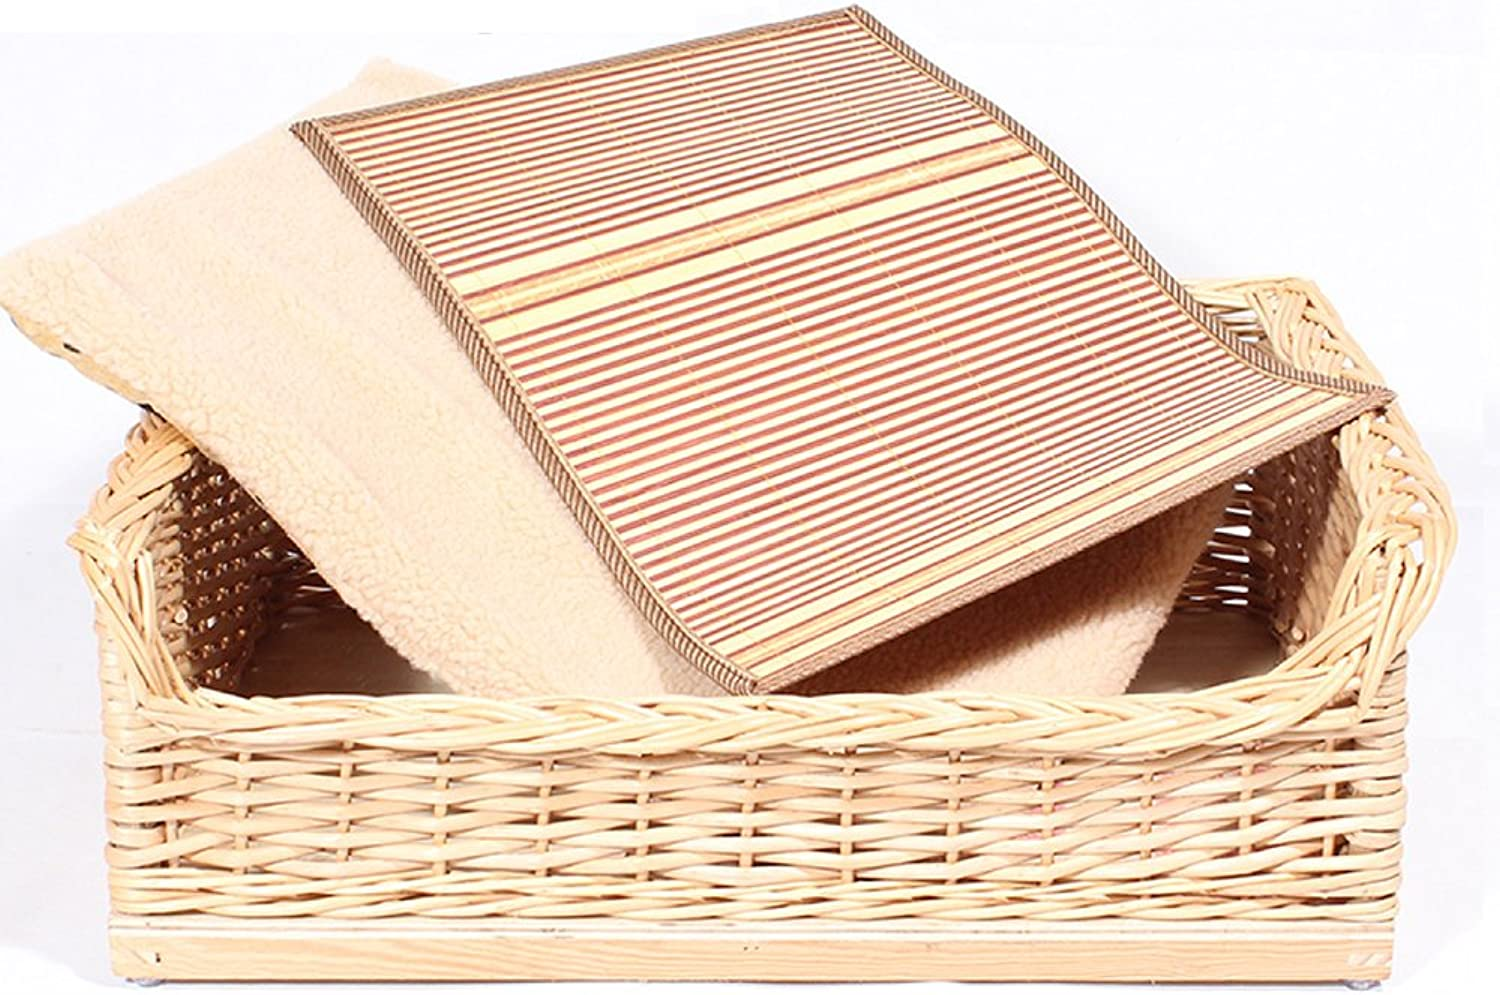 Rattan Kennel Mediumsized Dog Solid Wood Home Nest Small Dog Pet Nest Dog Bed Bamboo Knit Doghouse,DS